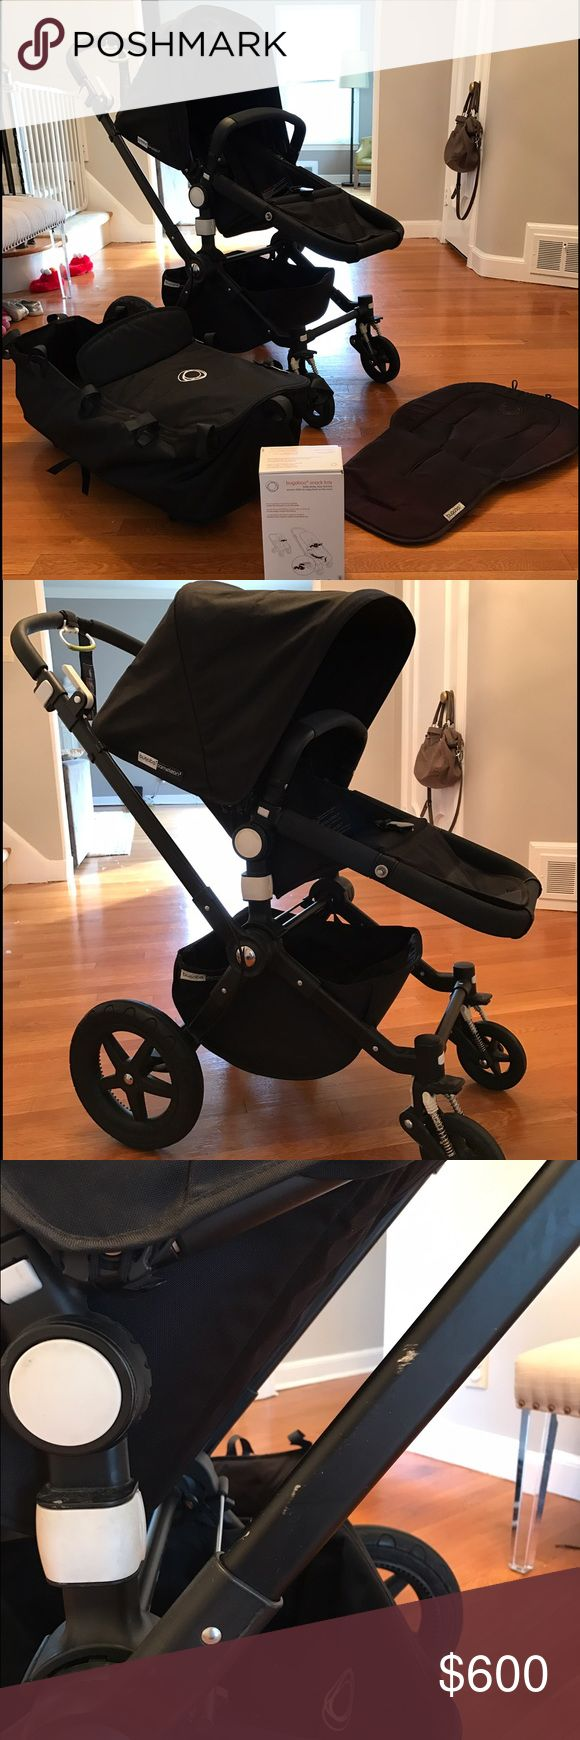 Black on black Bugaboo Cameleon 3 GREAT CONDITION!  Black on black Bugaboo Cameleon 3 for sale. Bundle includes: - frame - seat w/canopy - bassinet (fits on same frame as seat) - seat liner  - snack tray  Seat is in GREAT condition. Always used with seat liner so no stains or tears. Some wear on frame but fairly minimal (see photo). Canopy also in perfect condition as used mostly with breezy sun canopy.   Hate to say good-bye to this great stroller but kids have outgrown. Hoping someone…